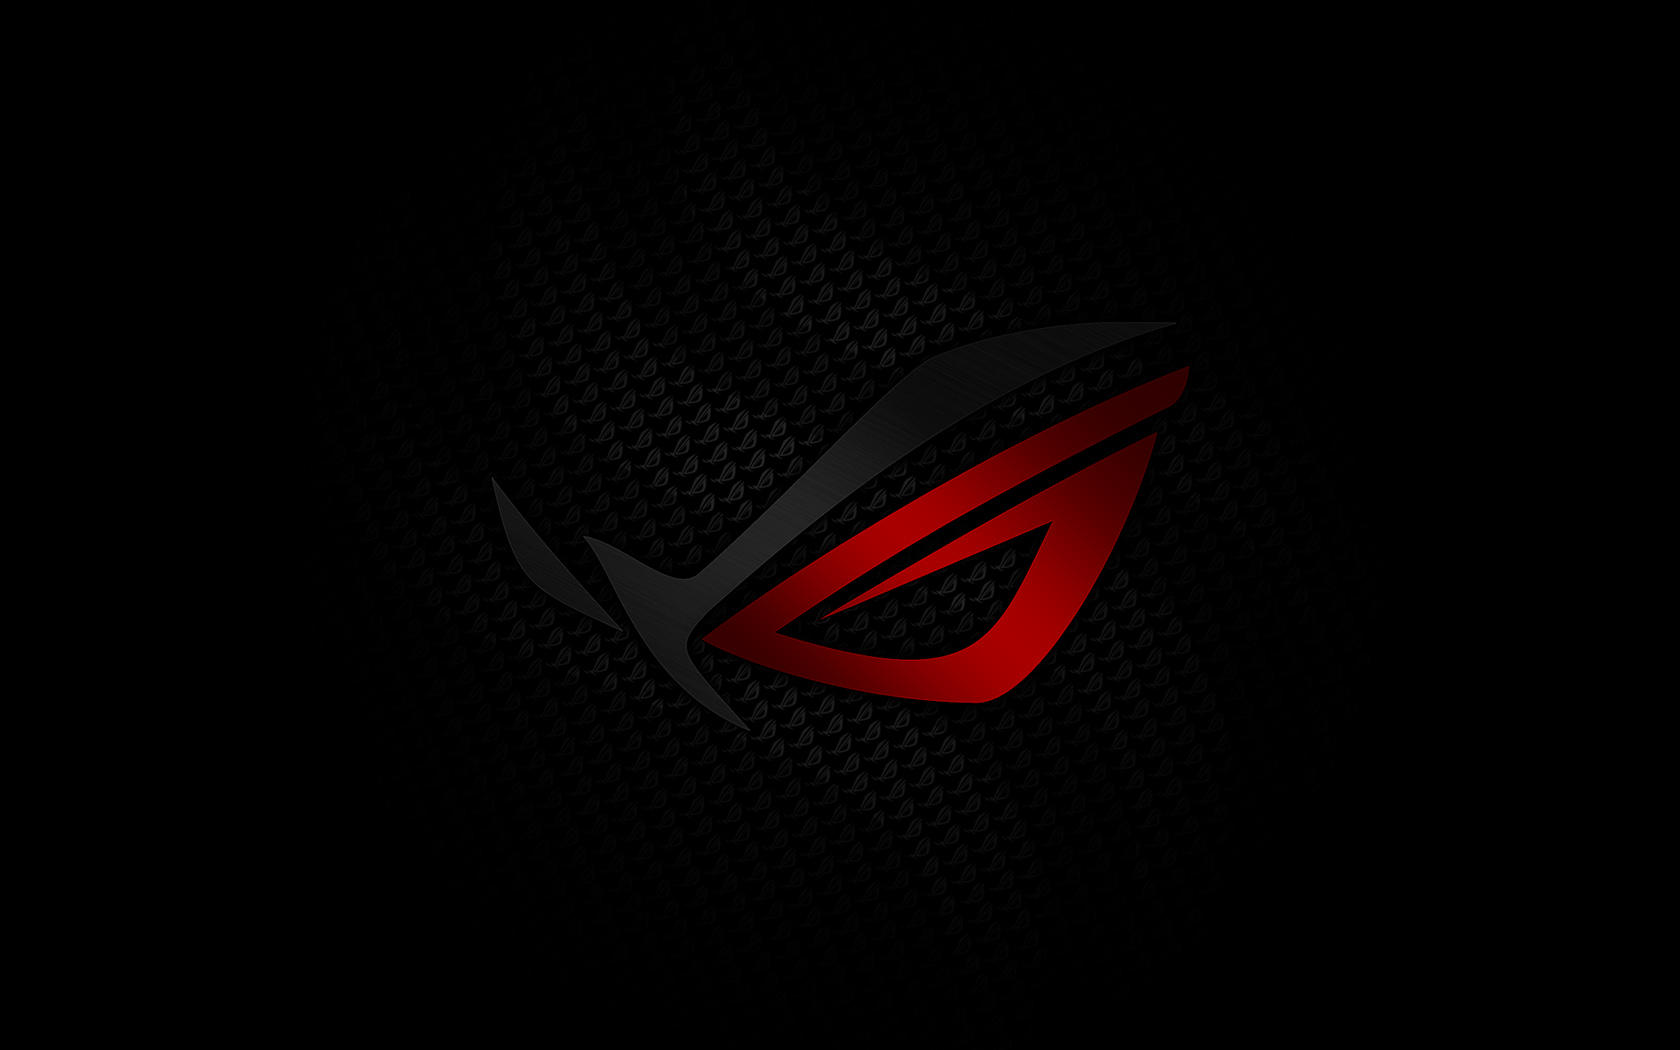 ASUS Republic Of Gamers Wallpaper Pack V2 By BlaCkOuT1911